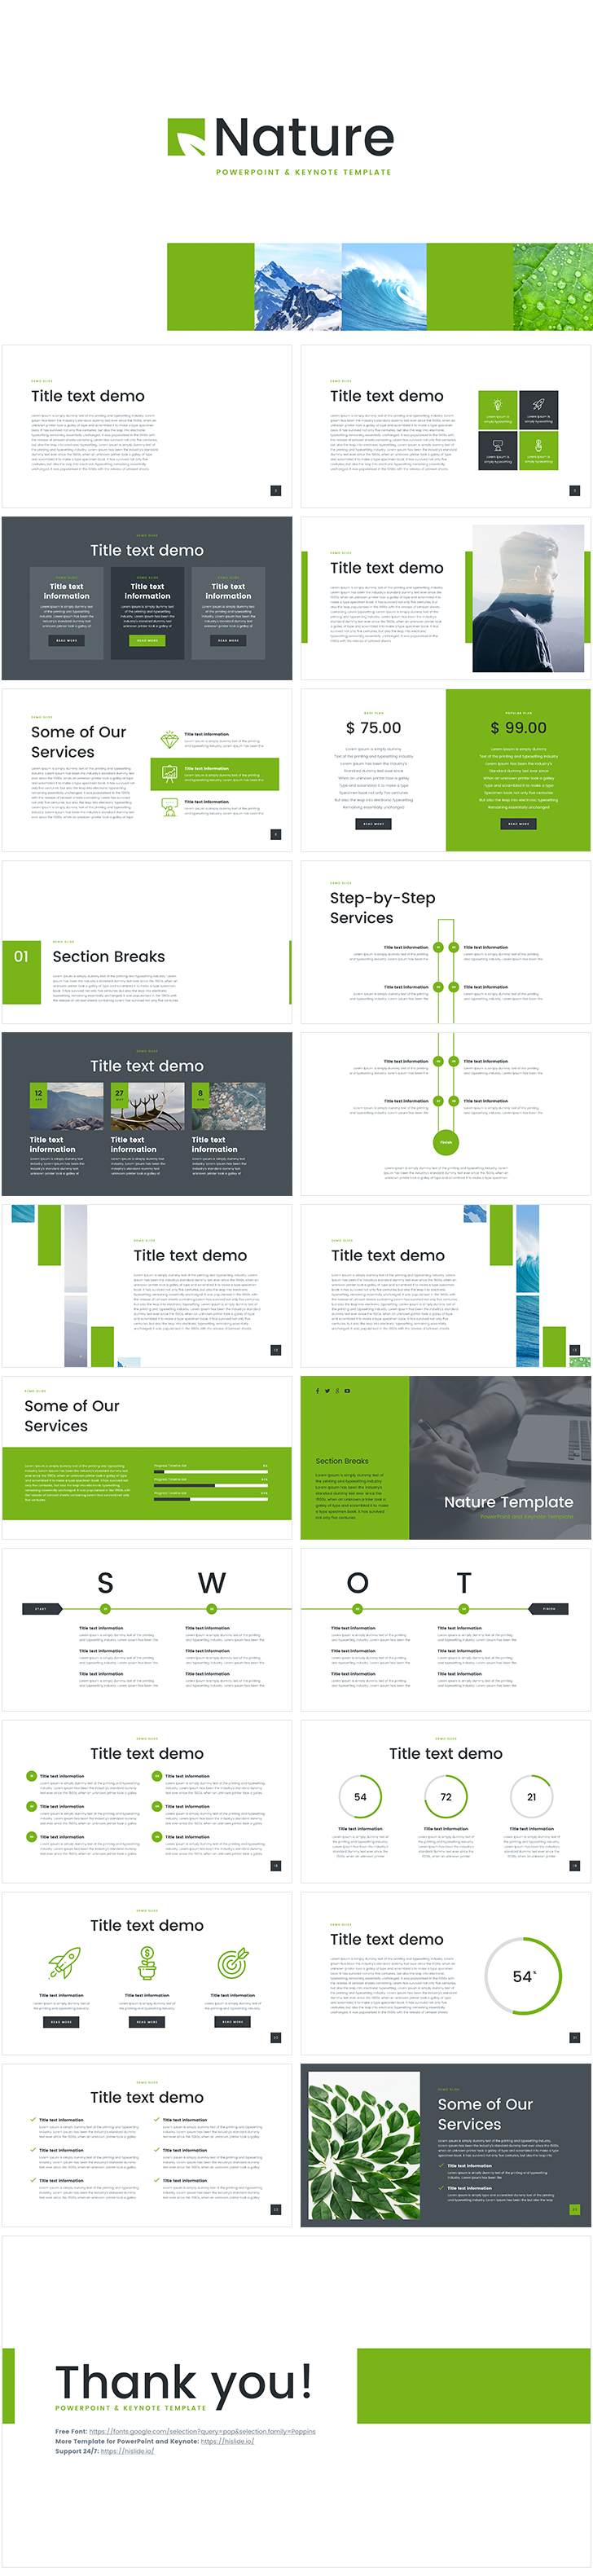 """download free new """"nature"""" template for powerpoint .ppt and, Powerpoint templates"""